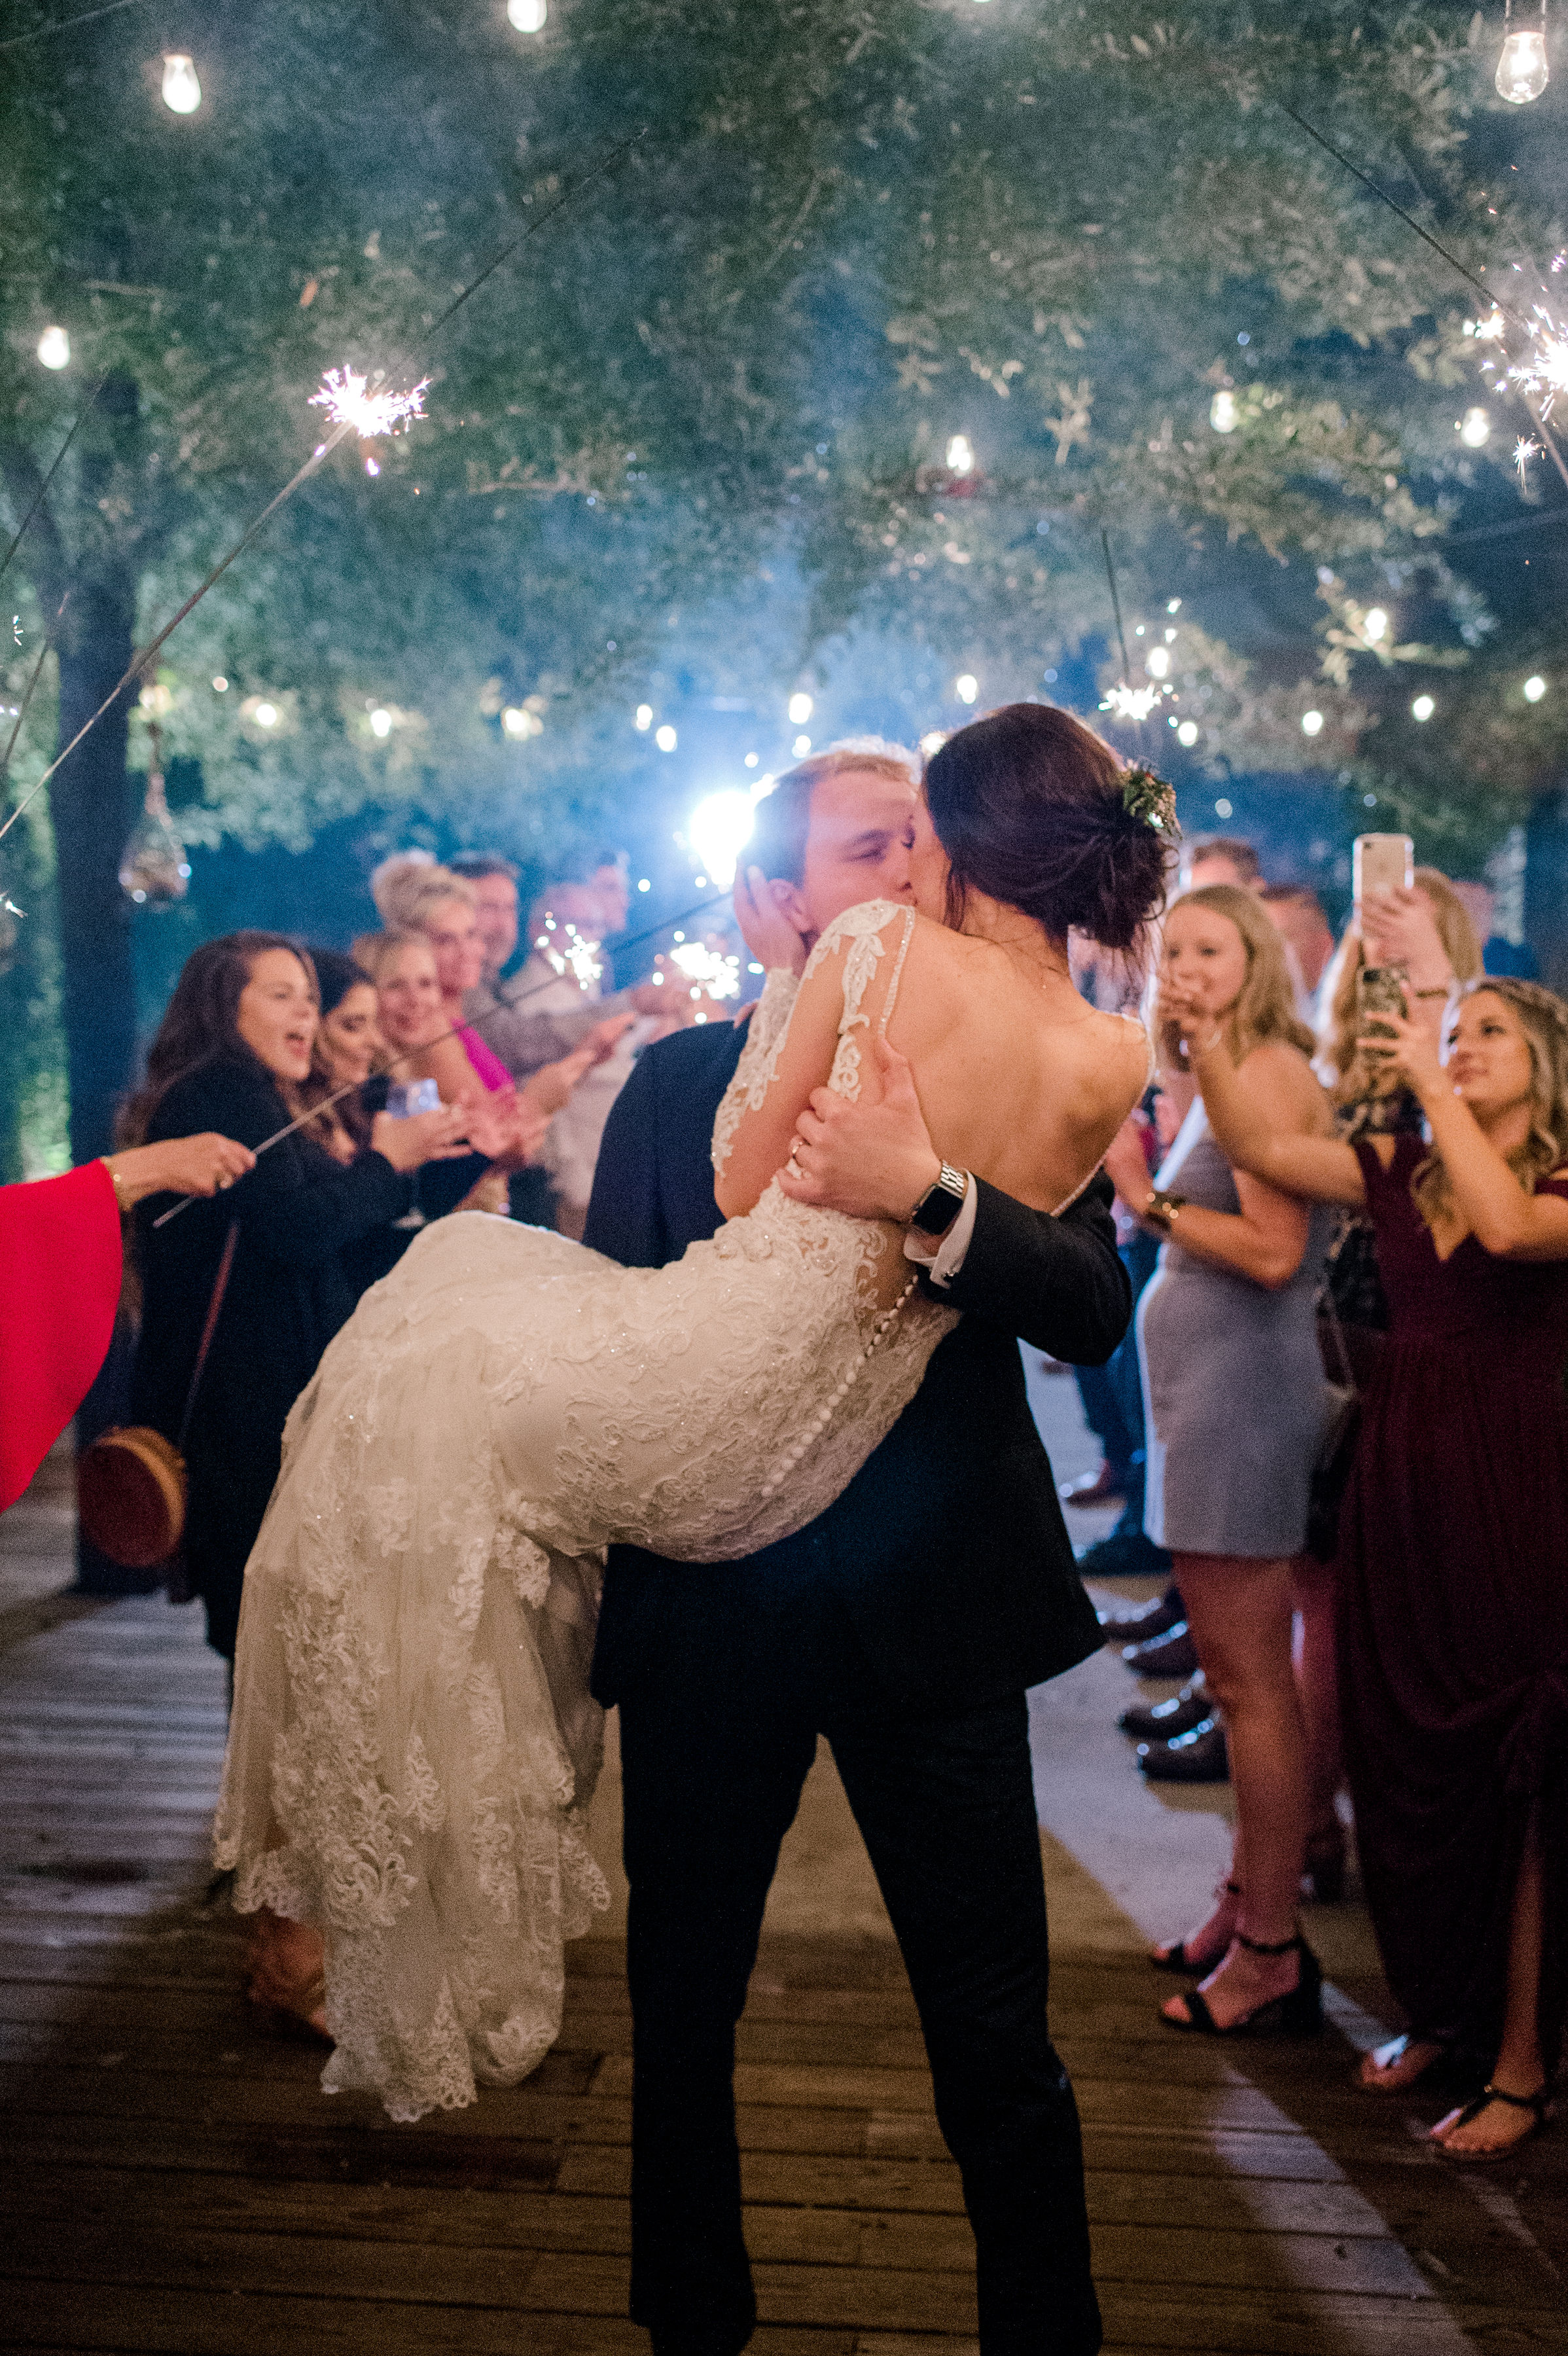 wedding-end-of-the-night-sparkler-exit-wedding-photography